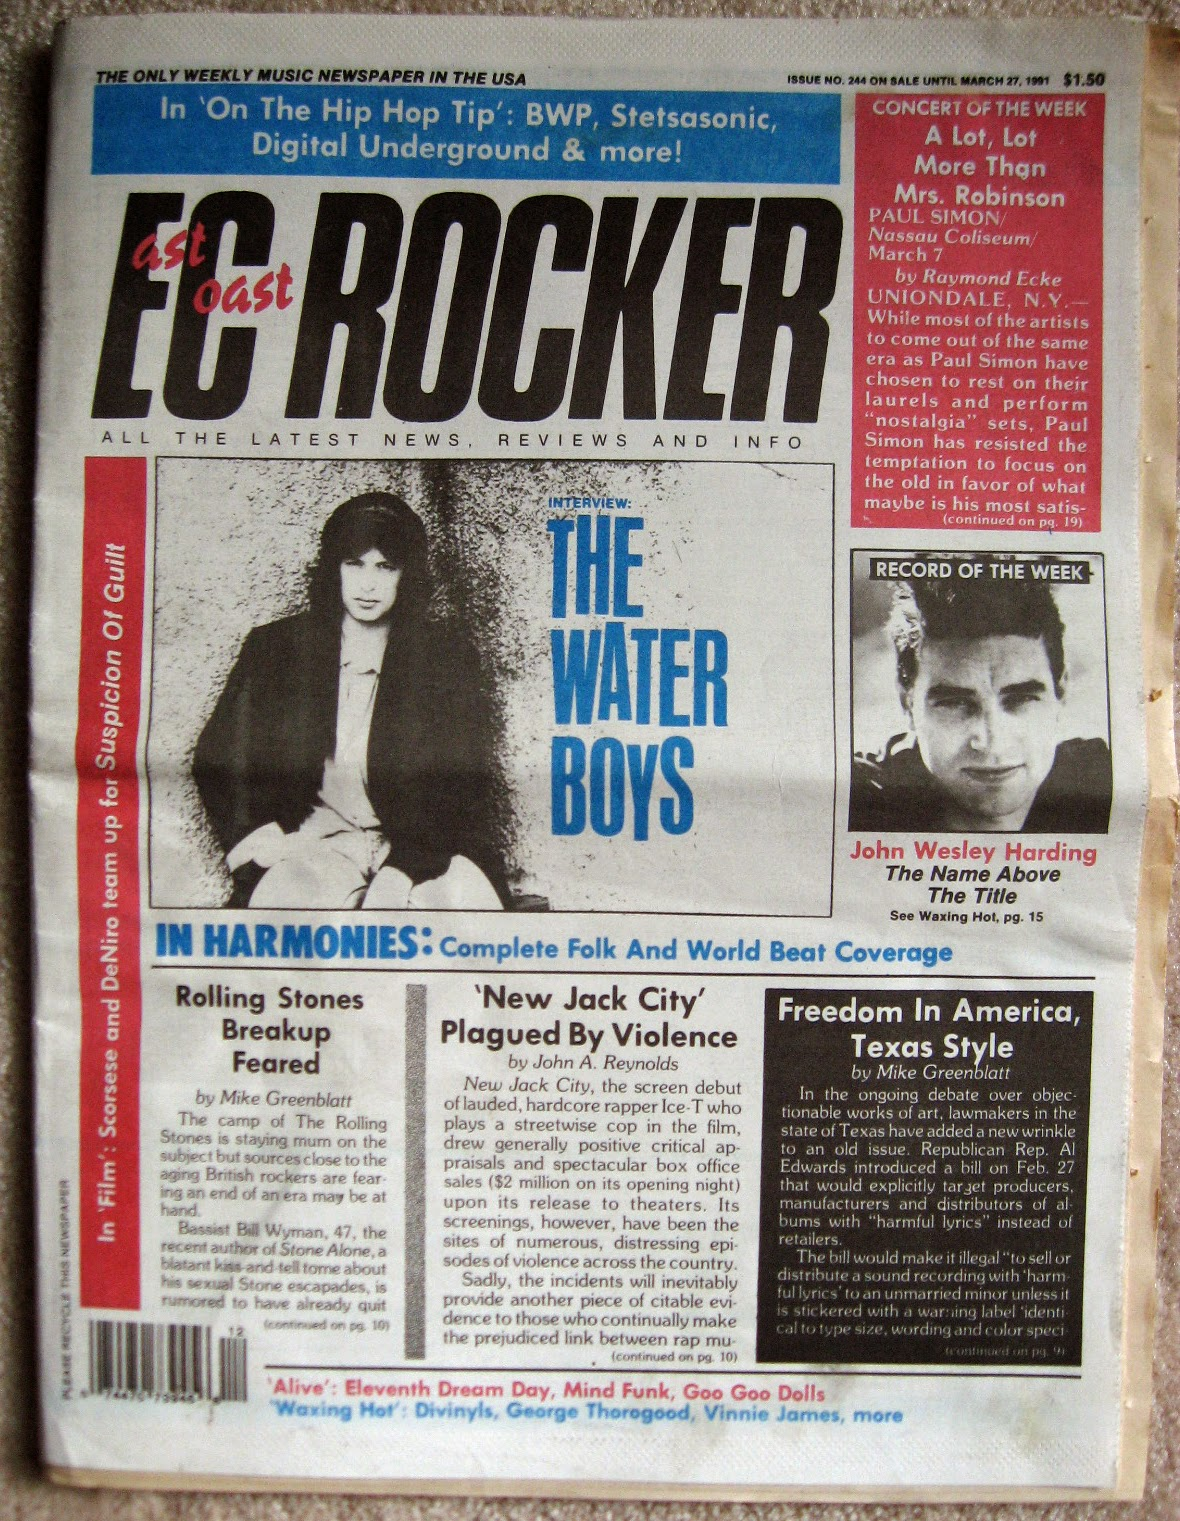 My copy of the East Coast Rocker rock mag March 1991